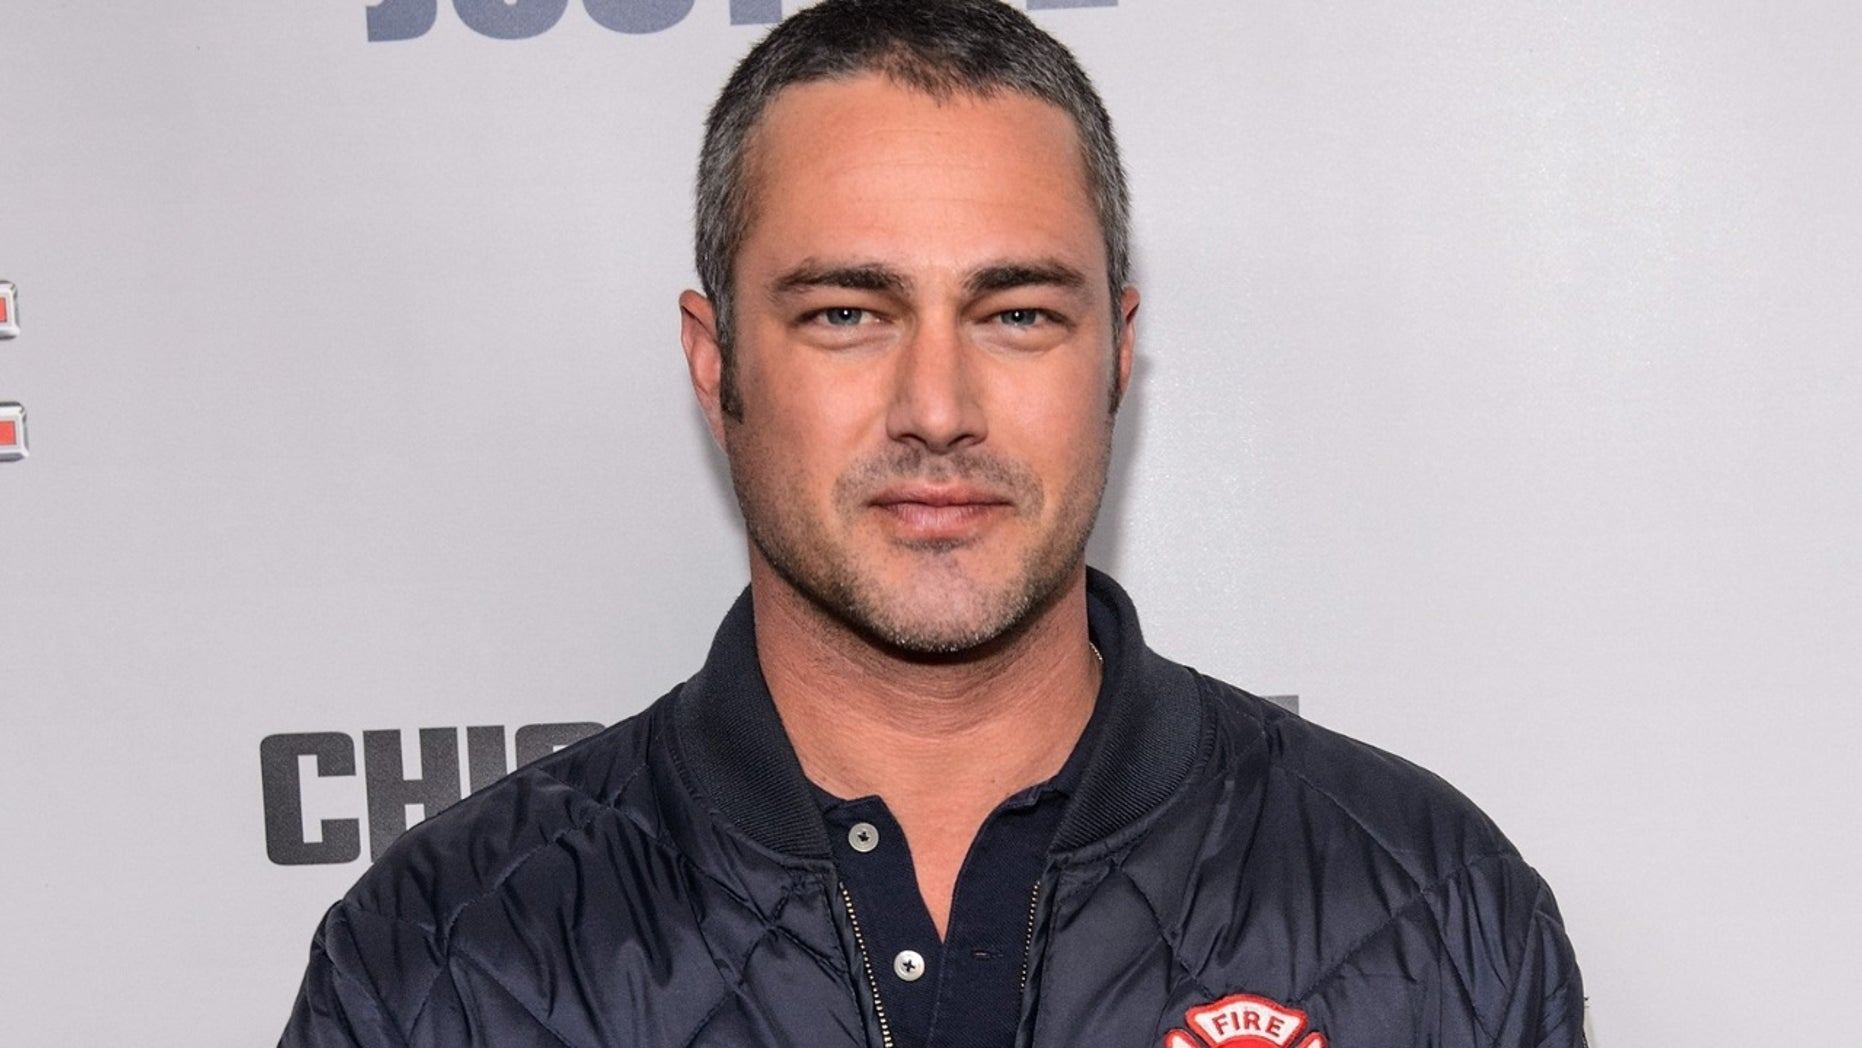 Taylor Kinney Helped A Man Whose Cars Tire Blew Out On Christmas Eve